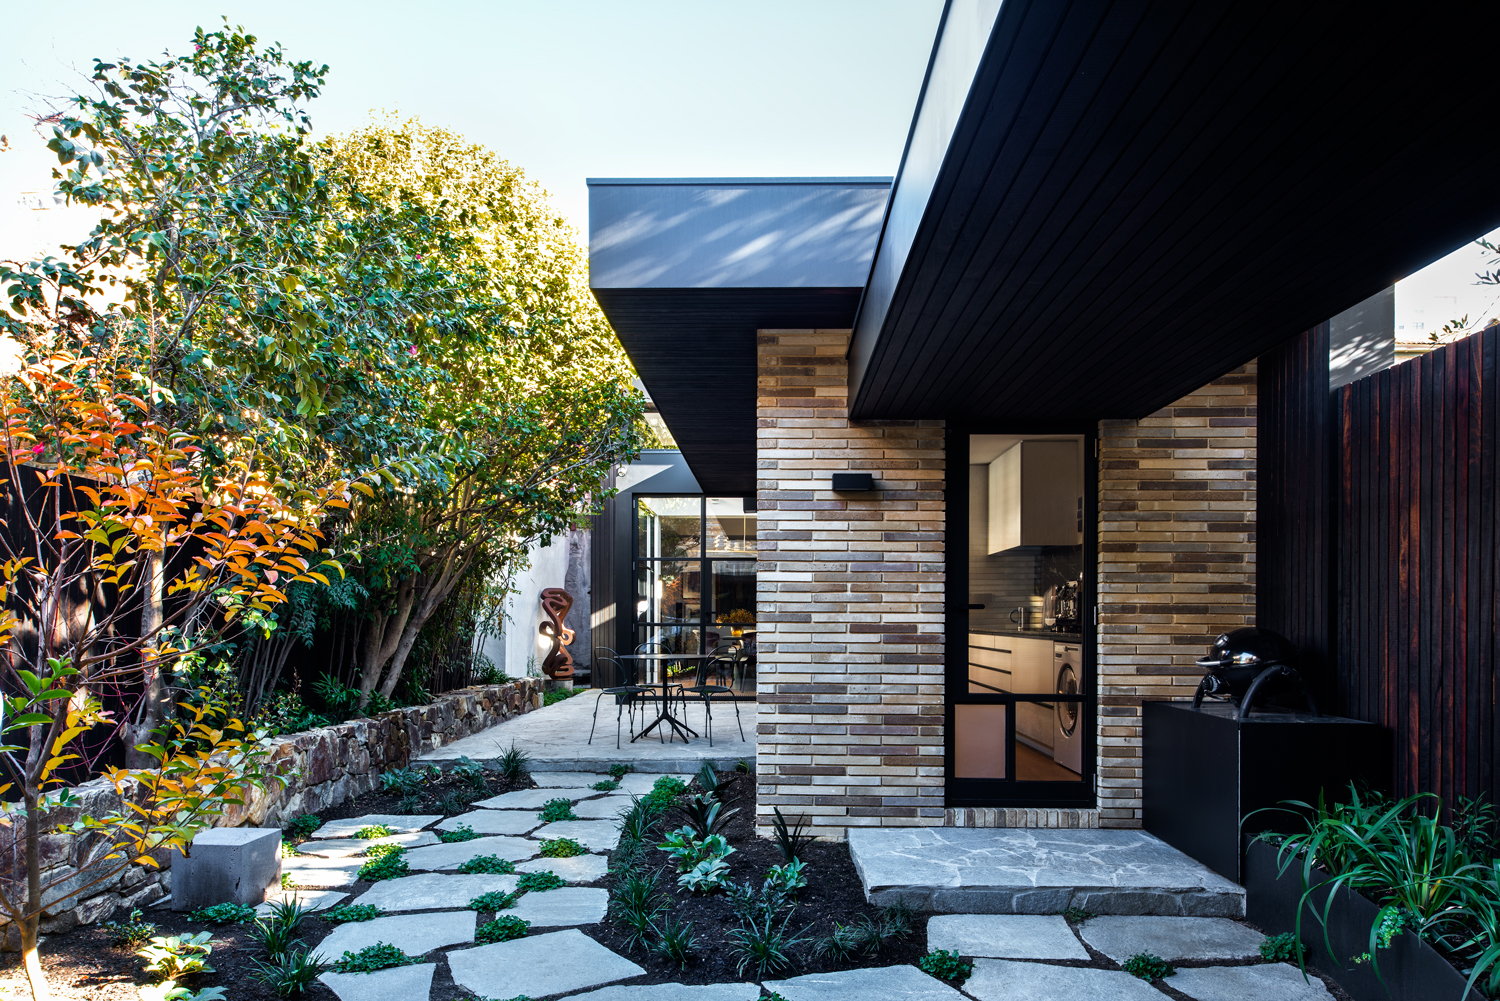 Terrace House by Inarc Architects